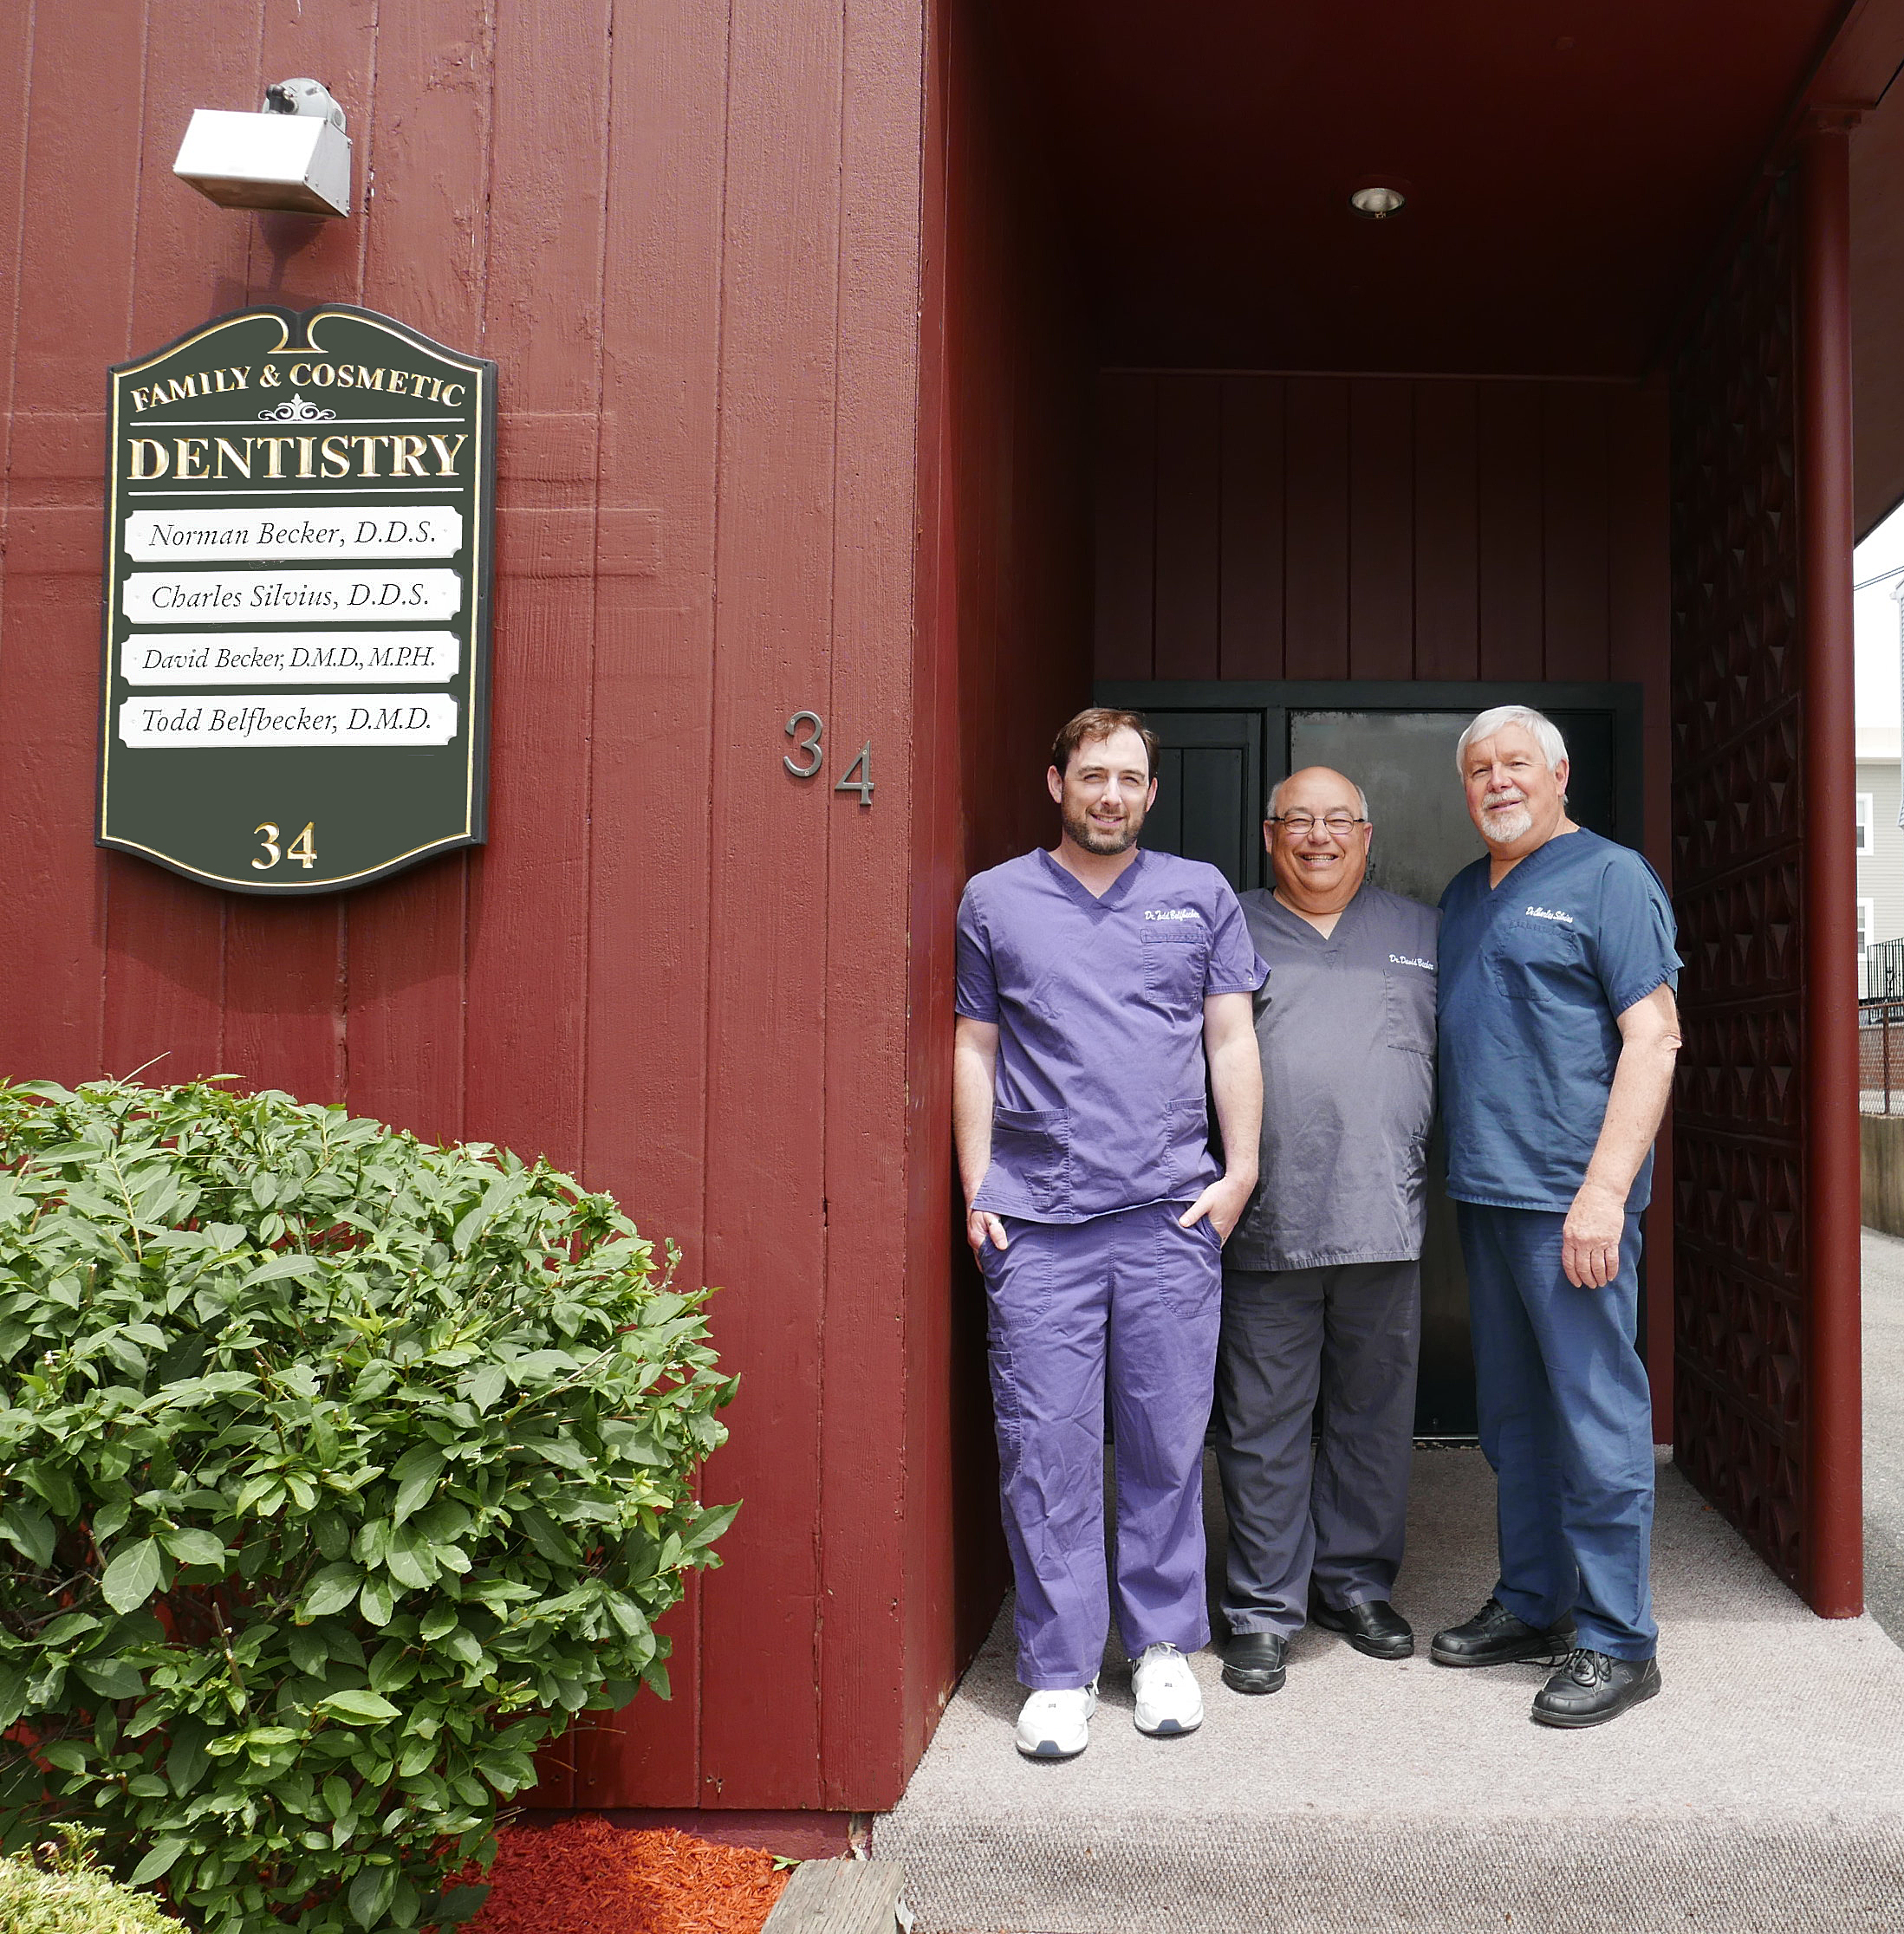 Dr. Todd Belfbecker, Dr. David Becker and Dr. Charles Silvius